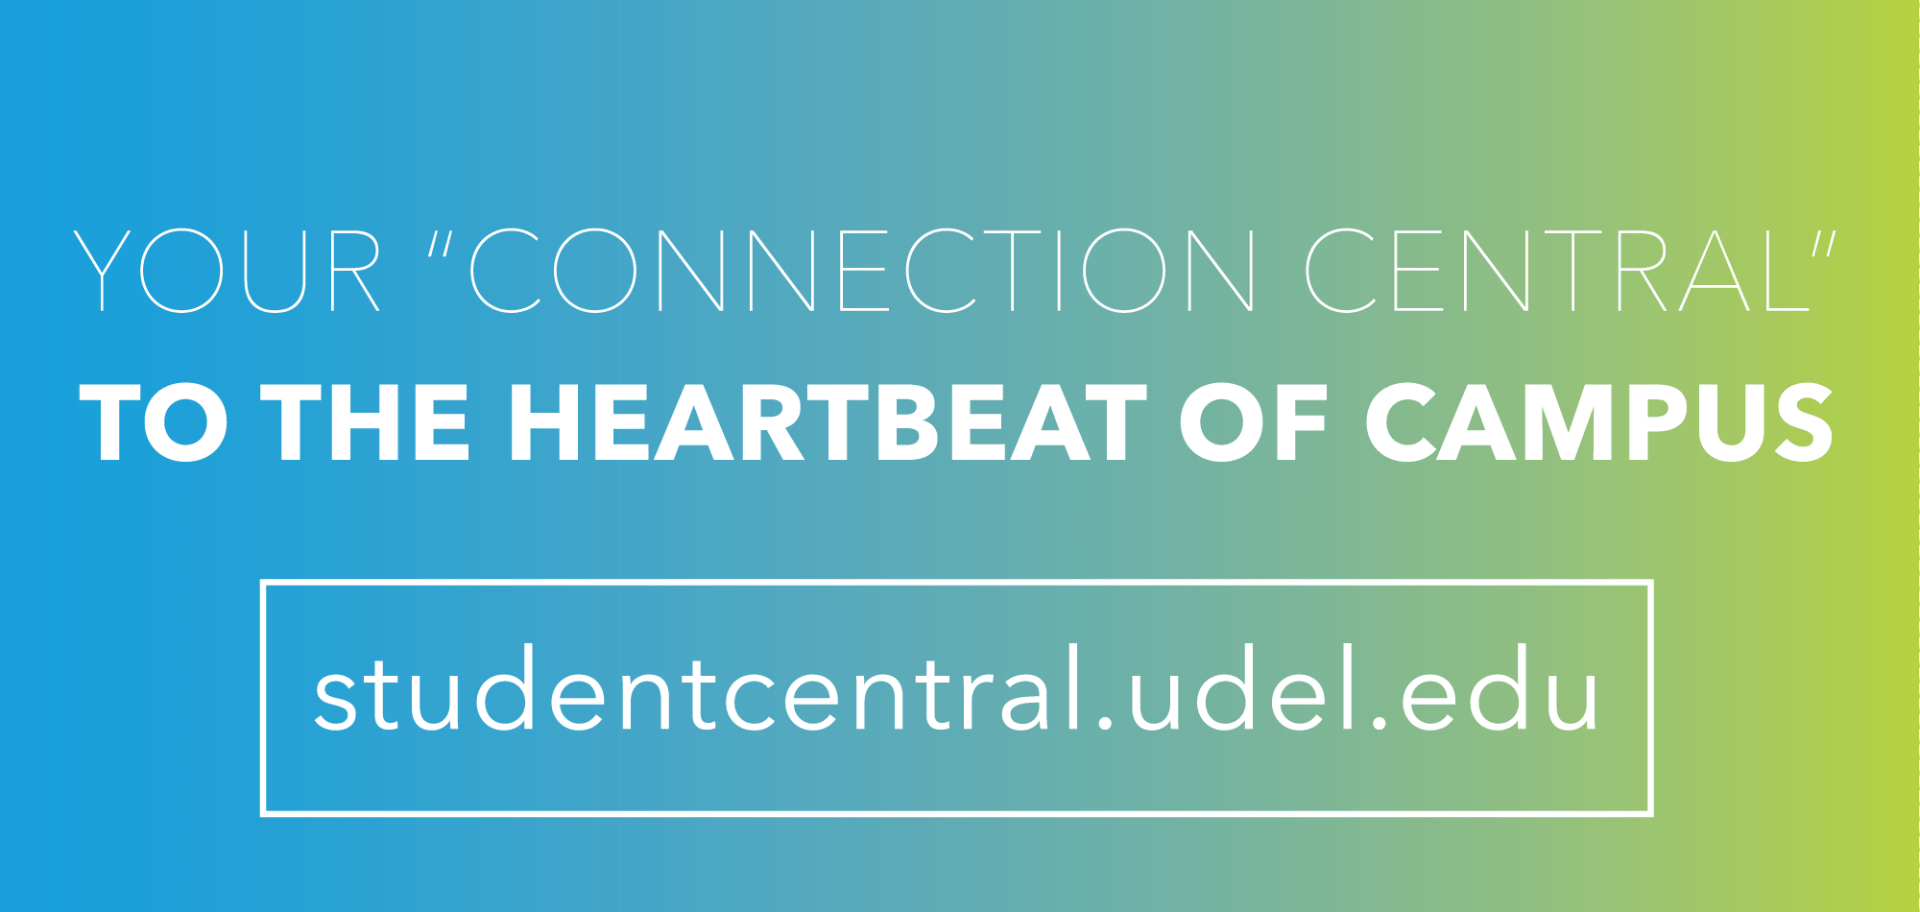 Your Connection to the Heartbeat of Campus: studentcentral.udel.edu